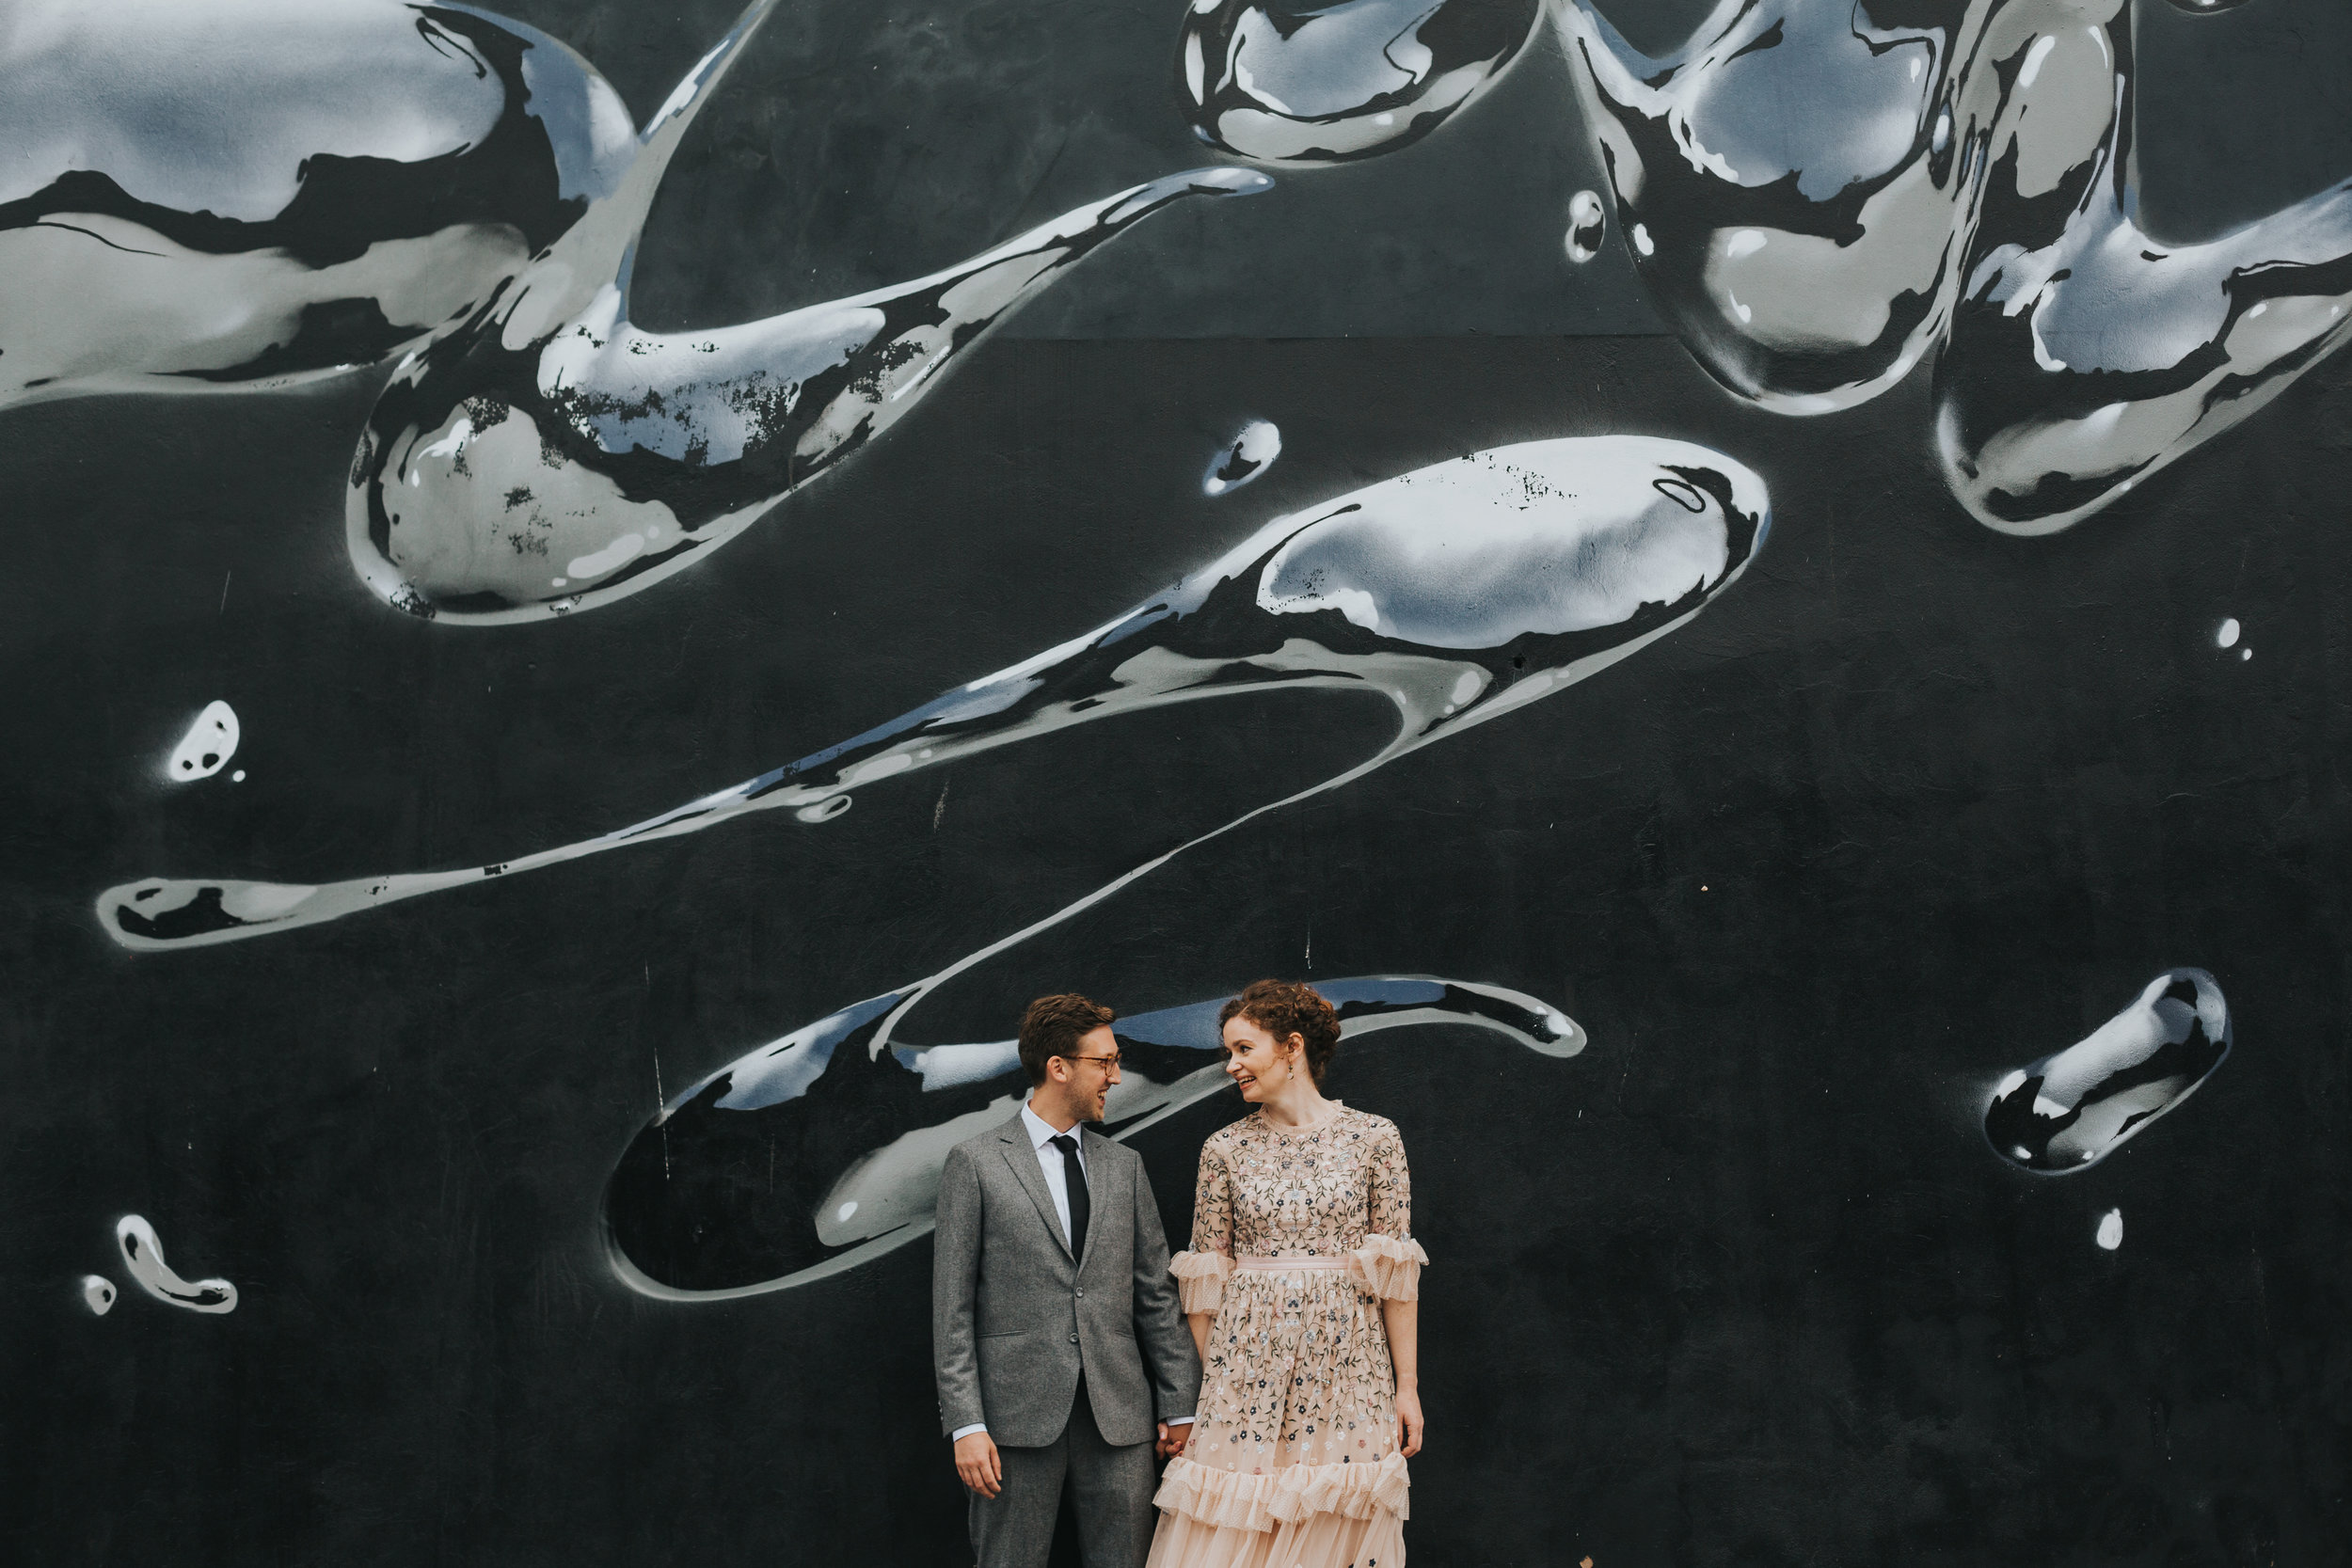 Bride and Groom in front of black and sliver metallic liquid mural.